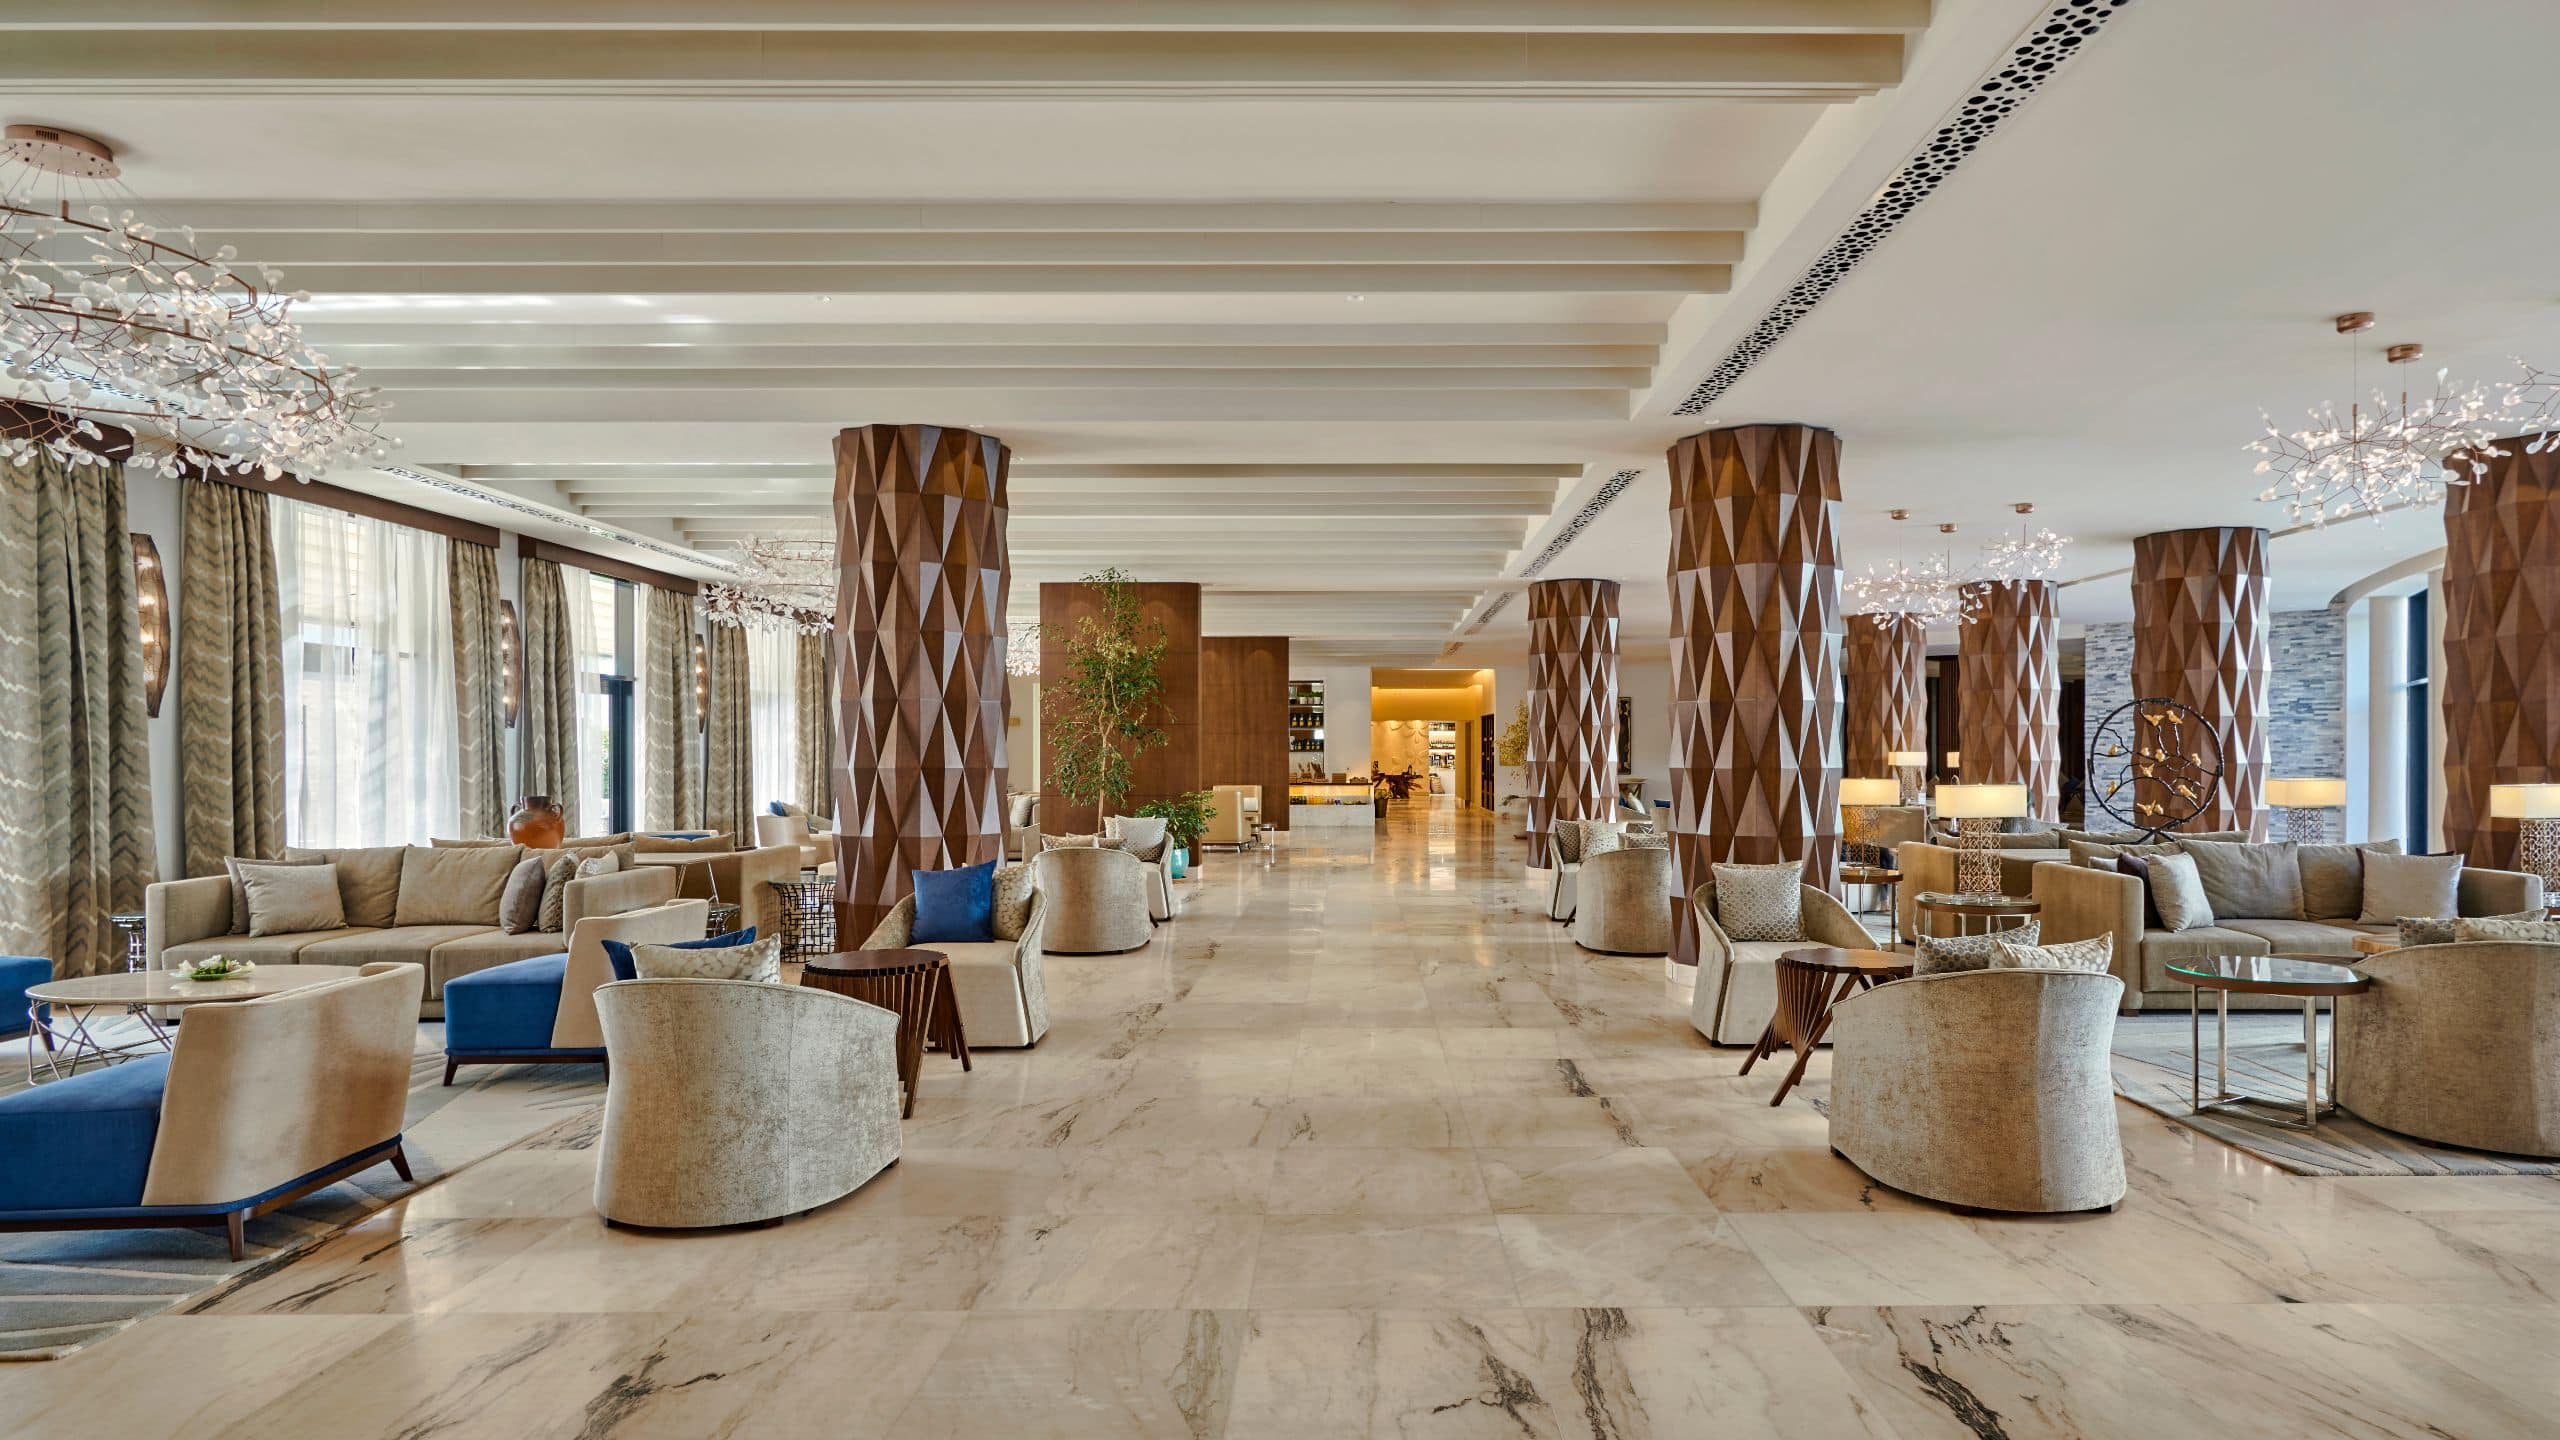 Upscale Hotel in Meskel Square|Hyatt Regency Addis Ababa